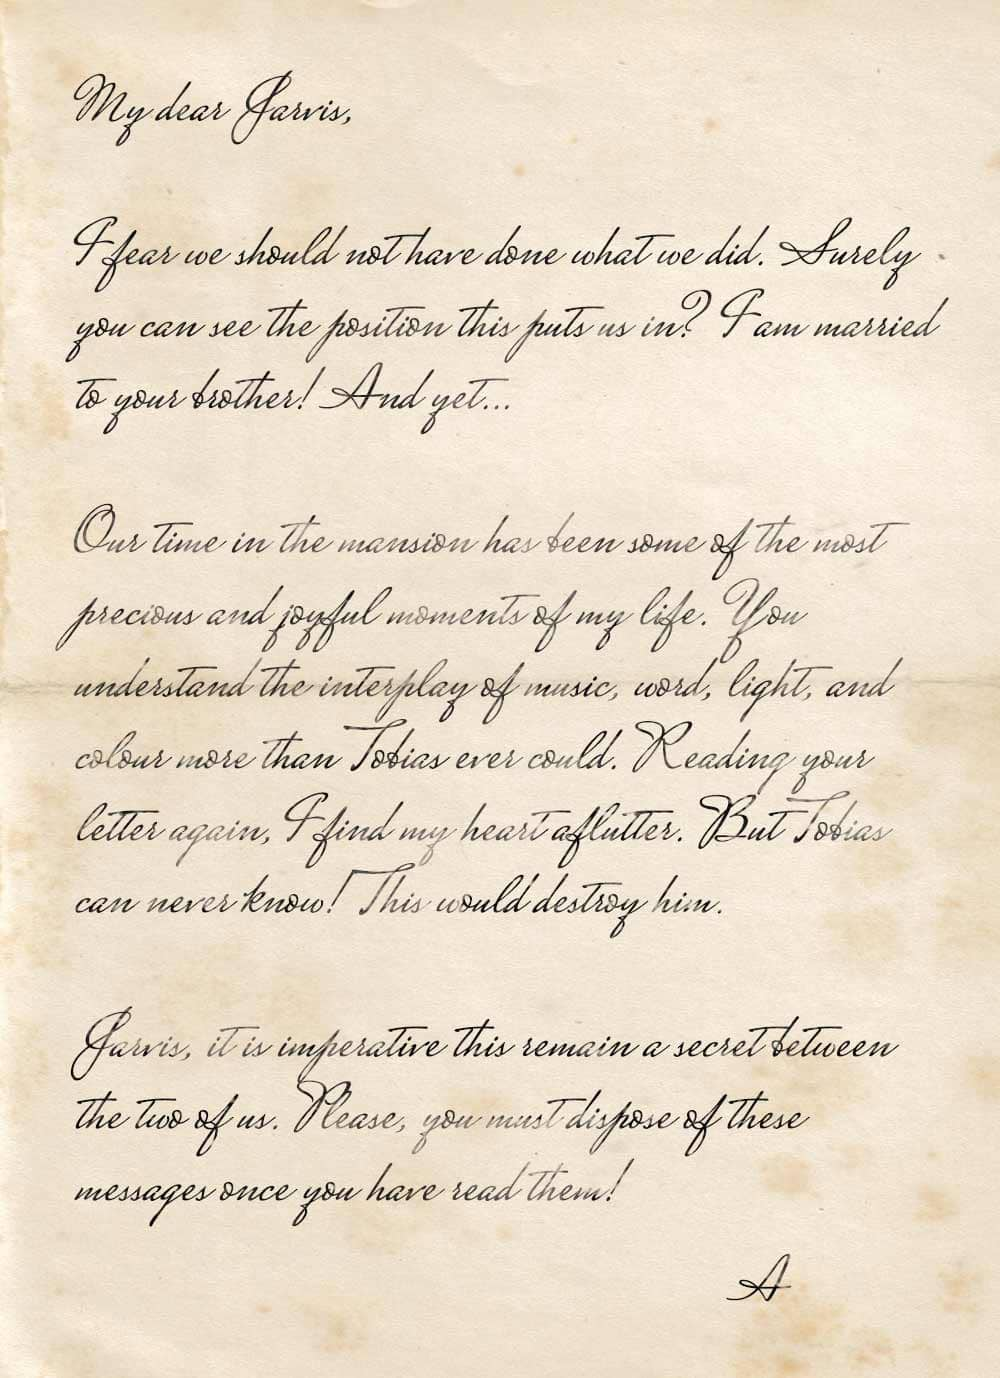 A note from Althea to Jarvis revealing an affair between the two of them.